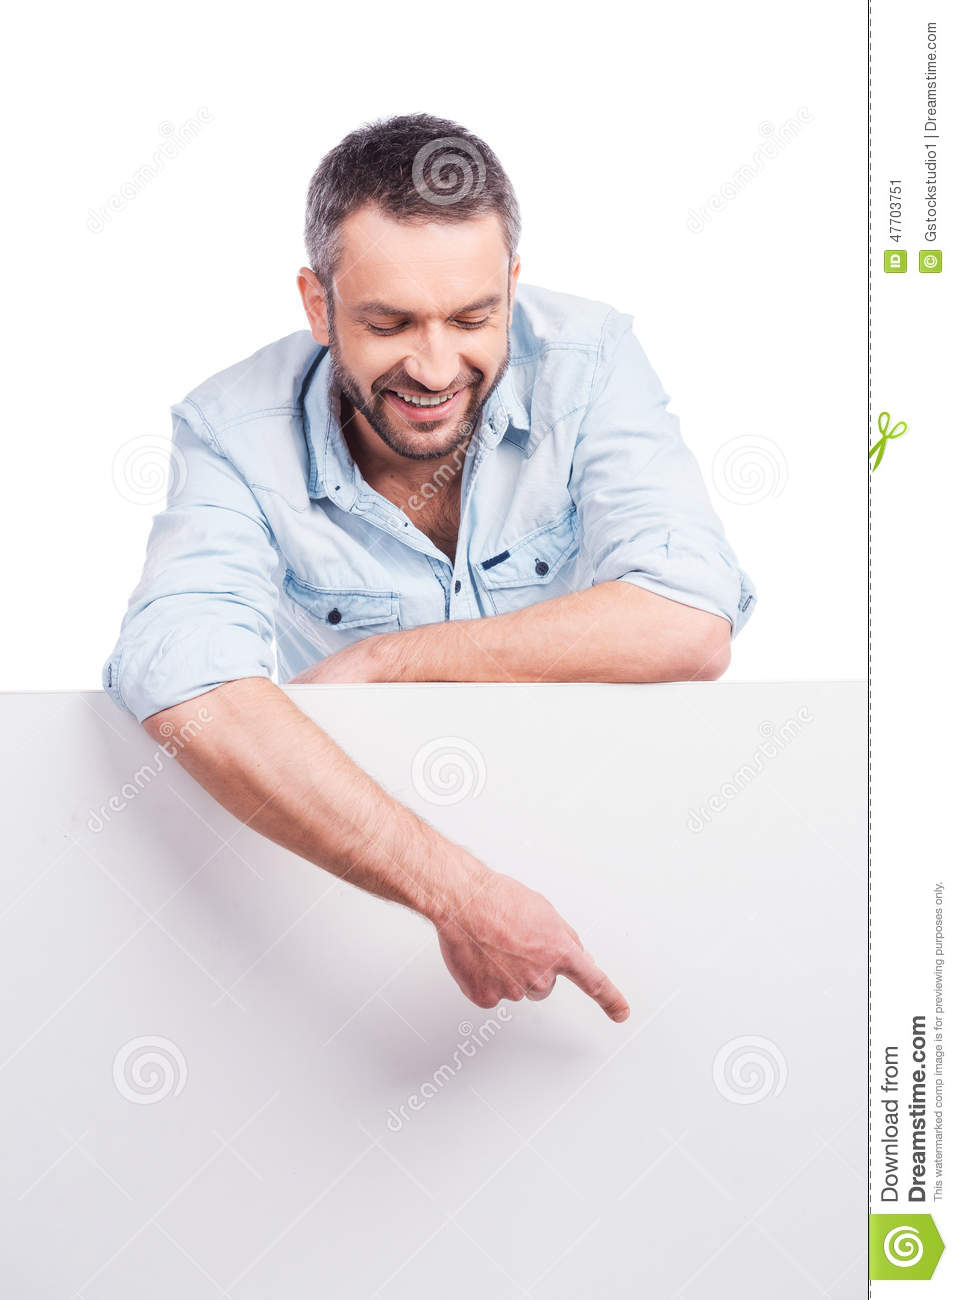 Look At That! Stock Photo - Image: 47703751